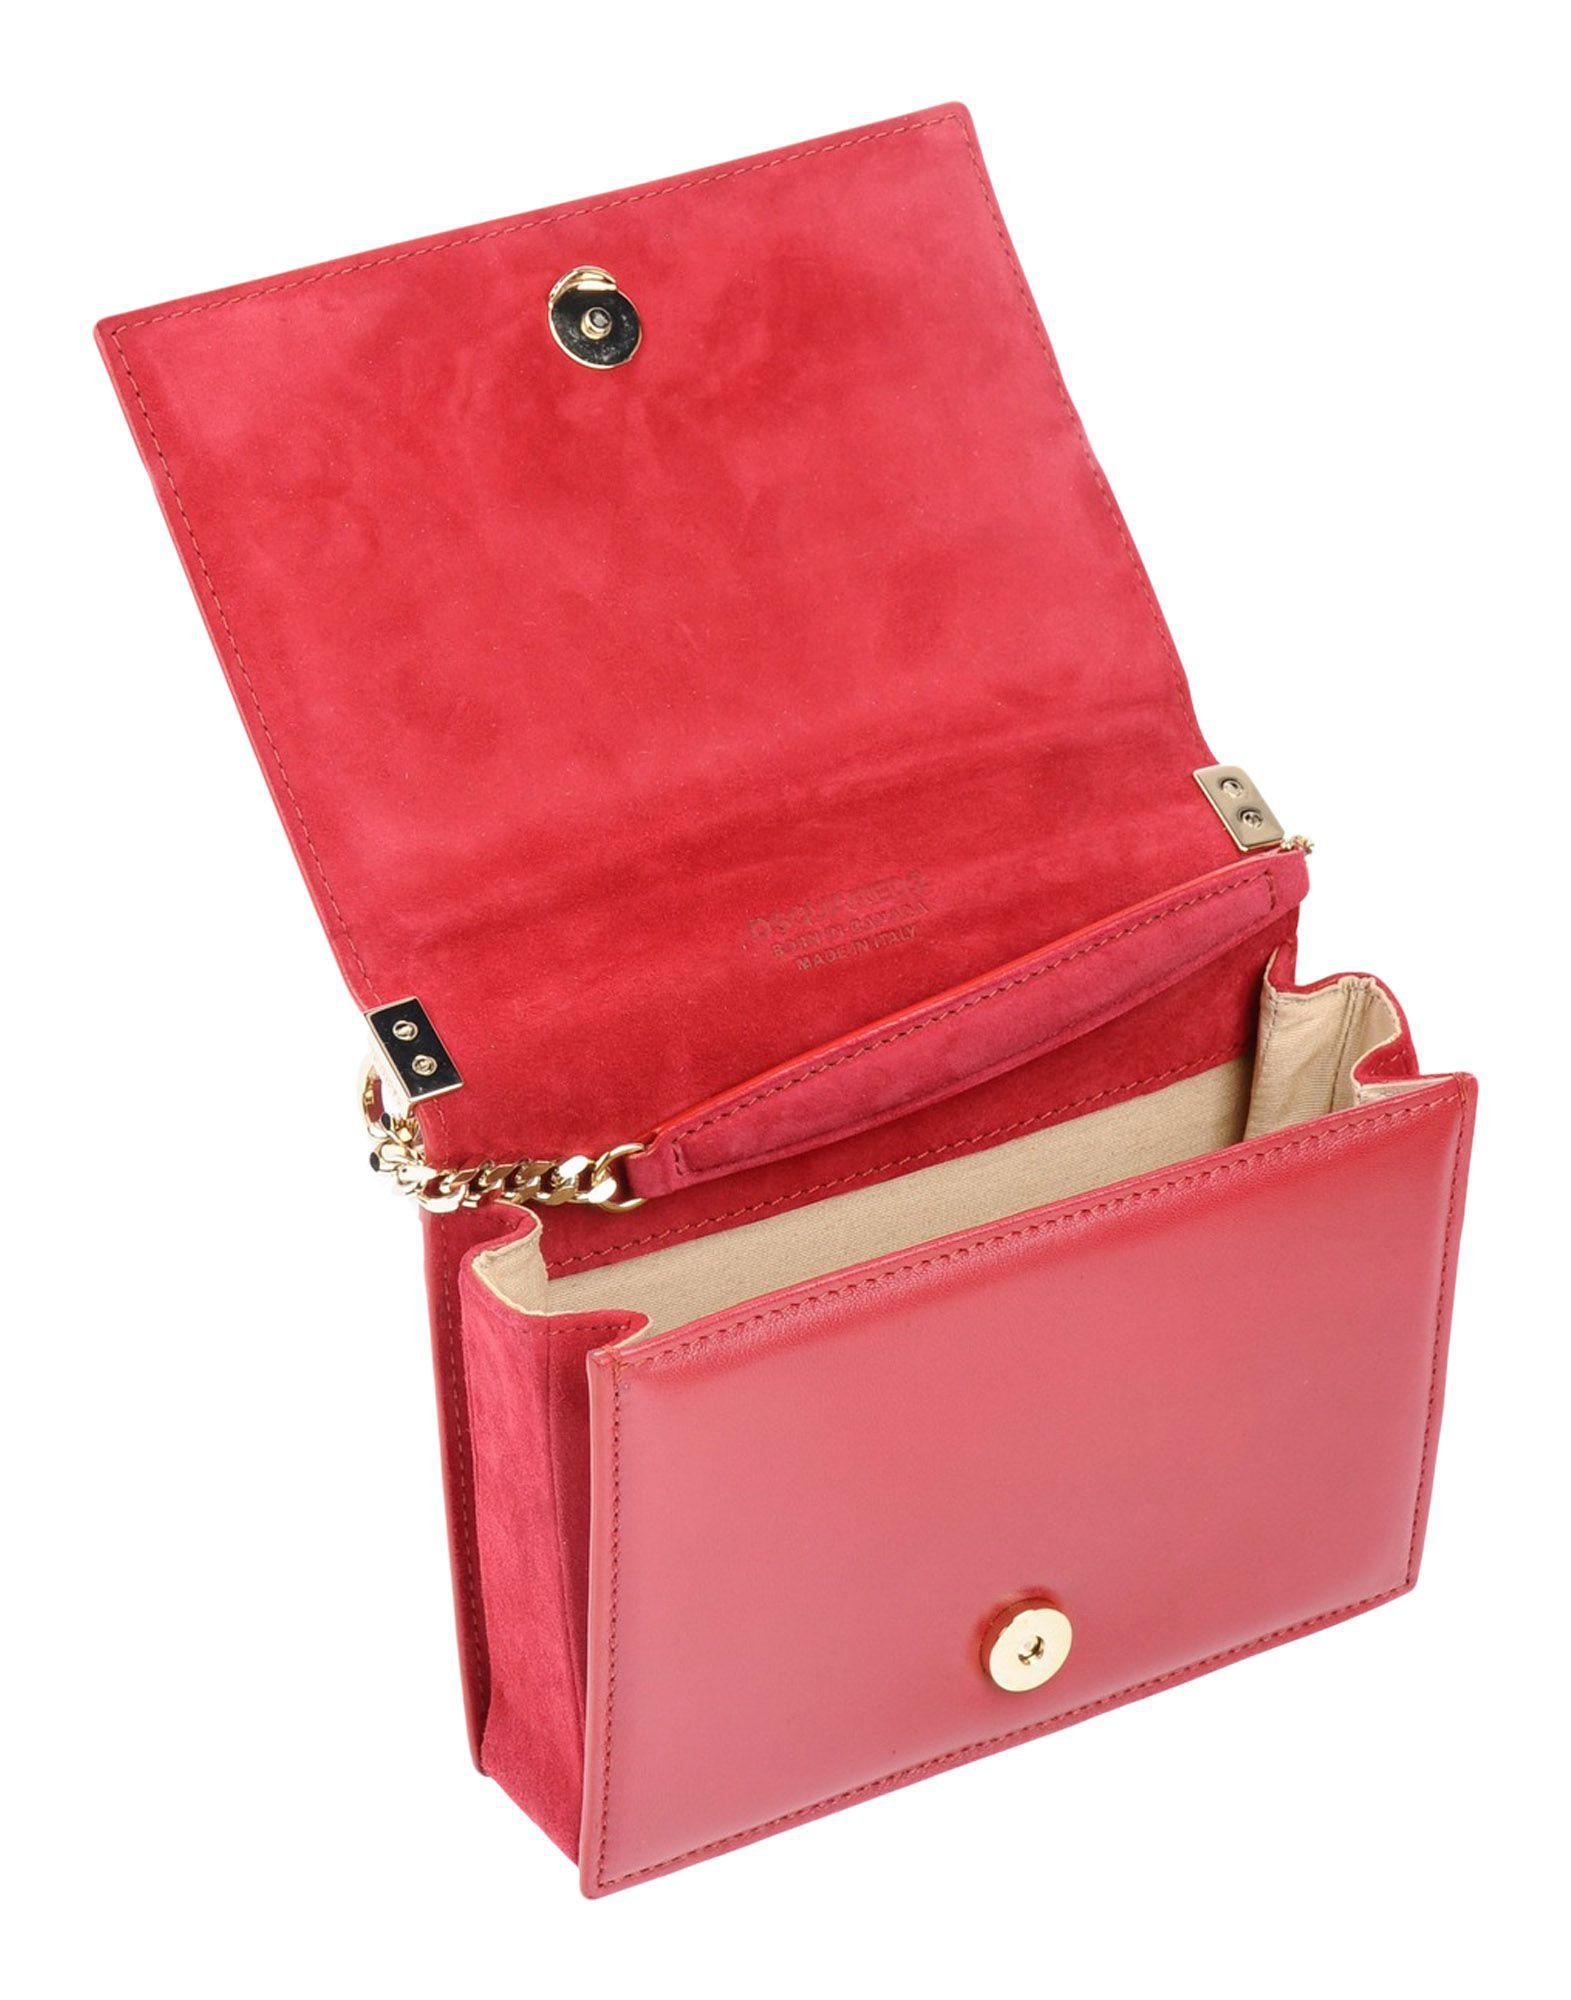 DSquared² Leather Cross-body Bag in Maroon (Red)